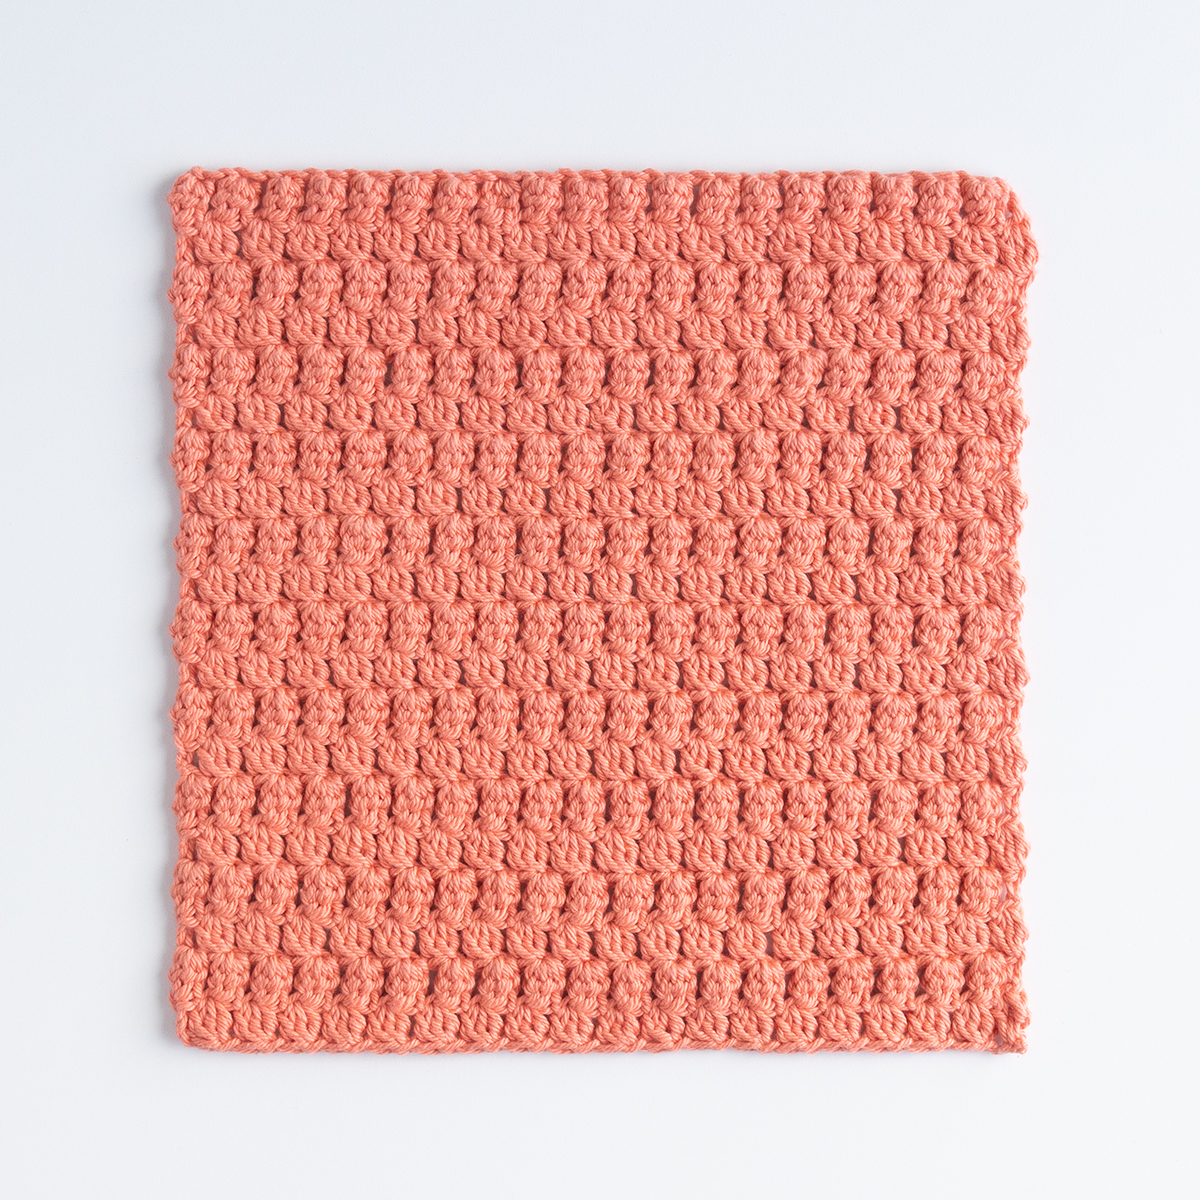 Little Leaves Crochet Dishcloth - Knitting Patterns and Crochet Patterns from...